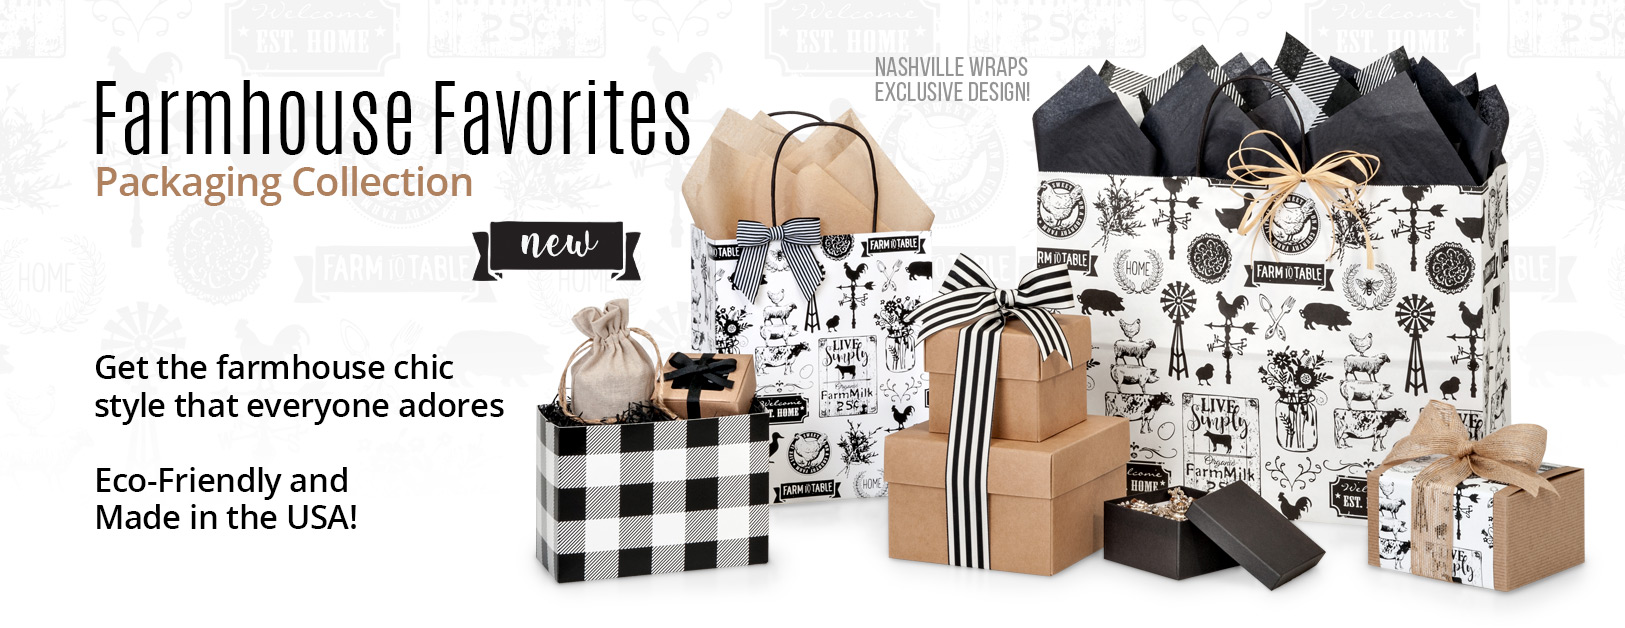 Farmhouse Favorites Shopping Bags Collection from Nashville Wraps